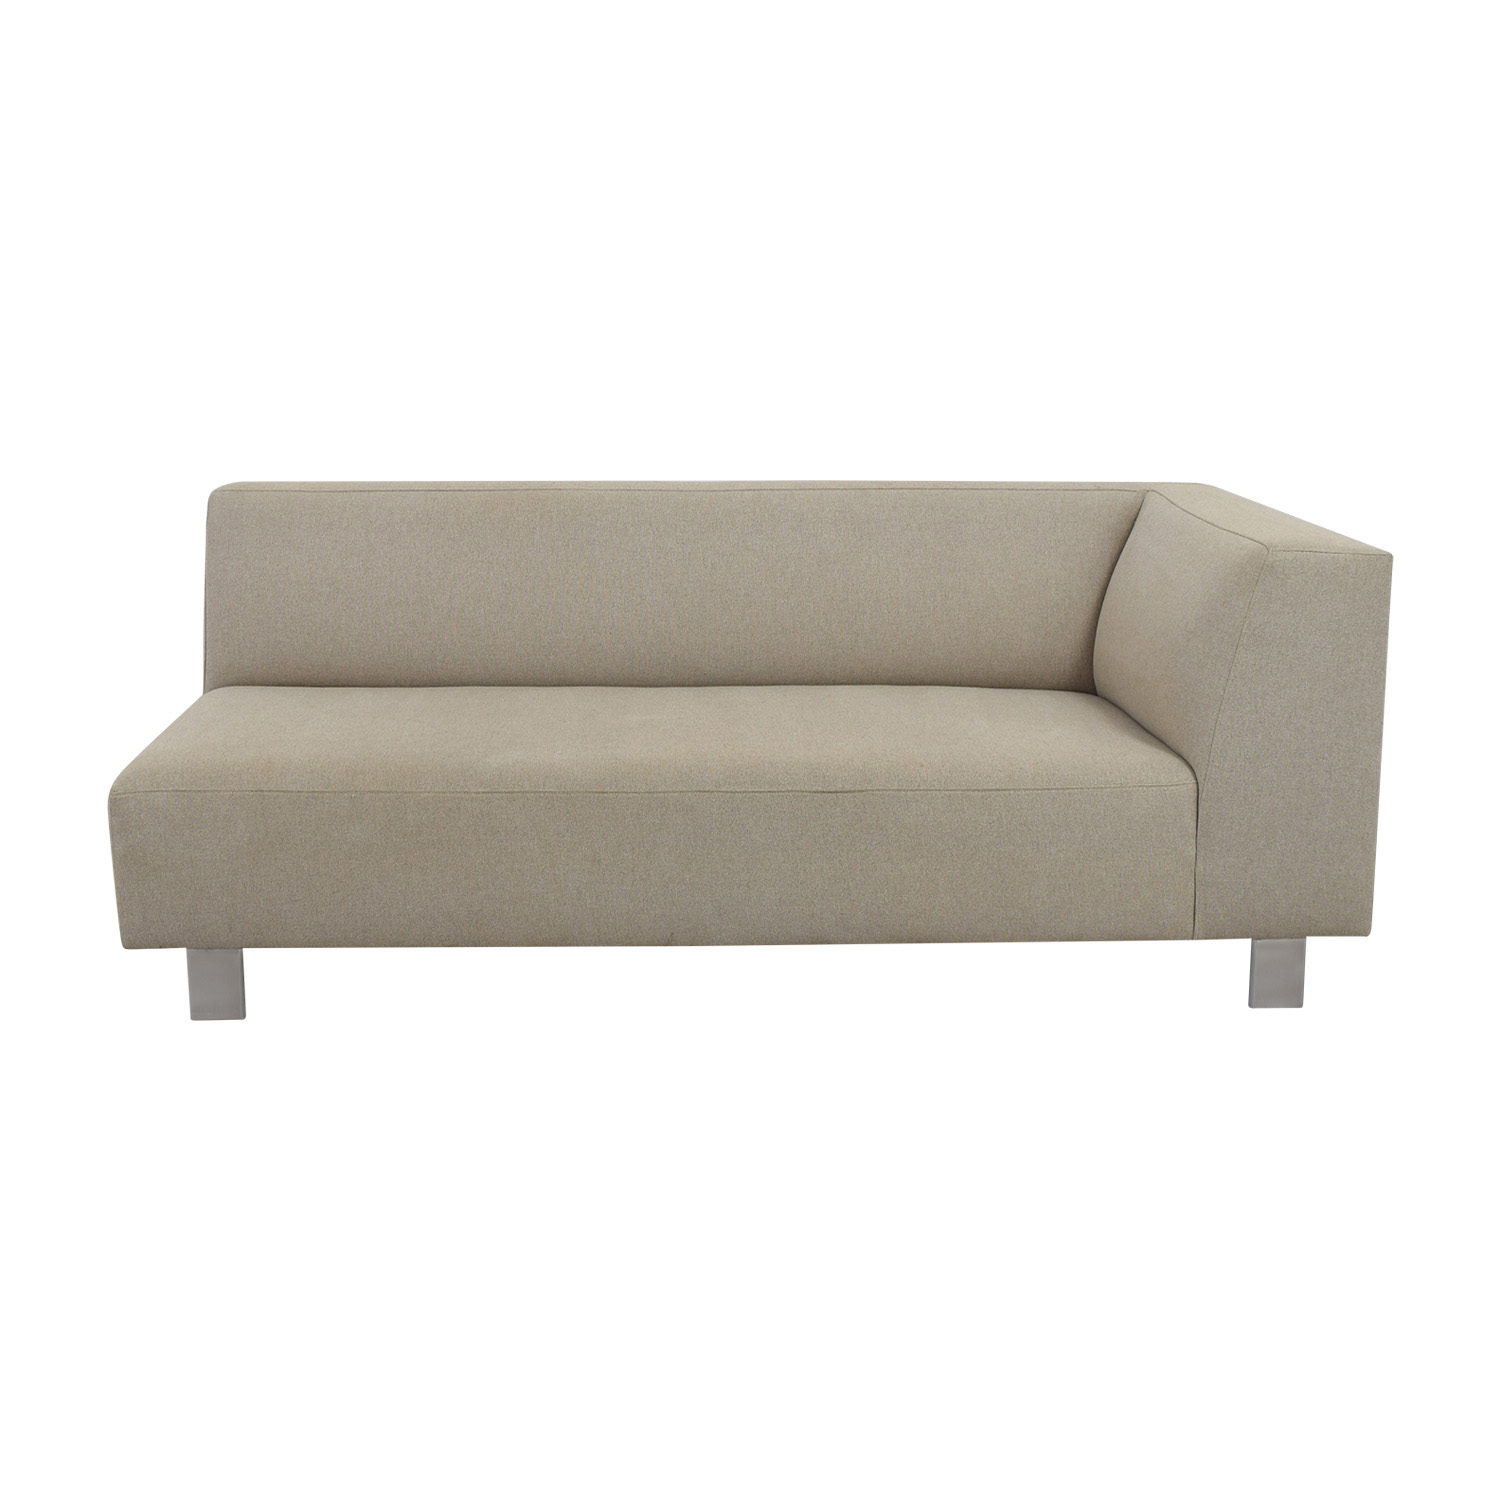 Room & Board Chelsea Left-Arm Sofa / Sofas